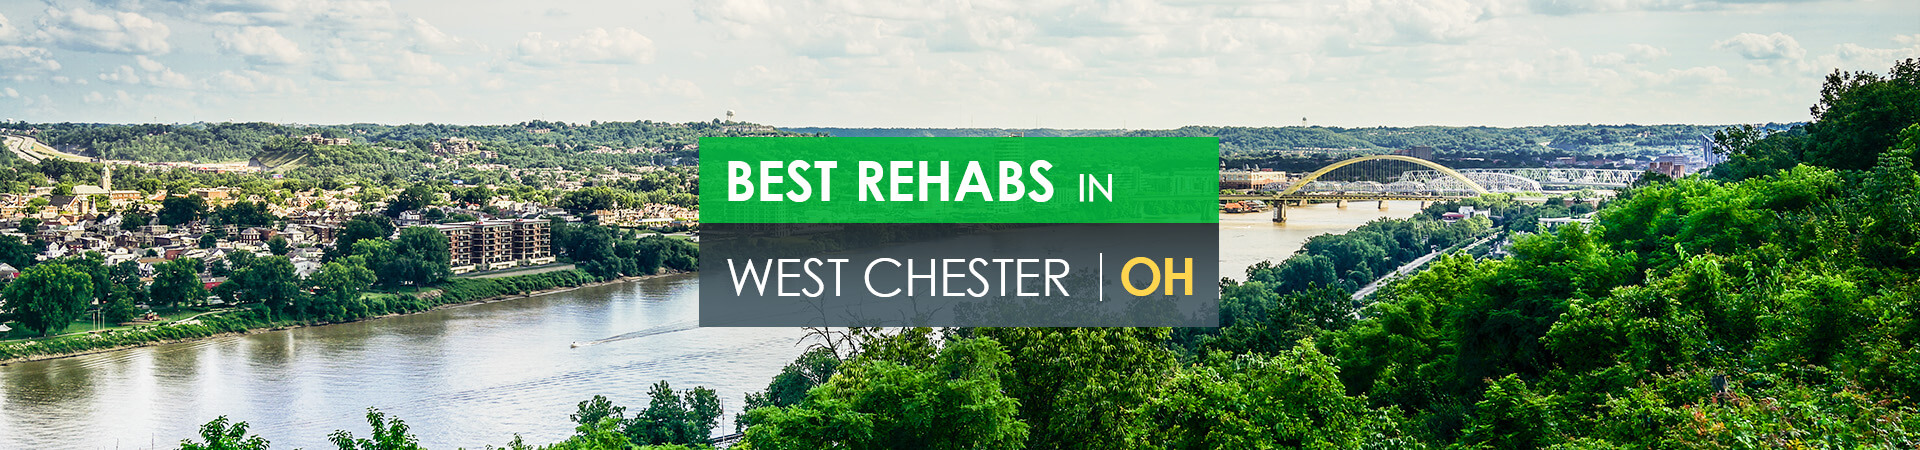 Best rehabs in West Chester, OH